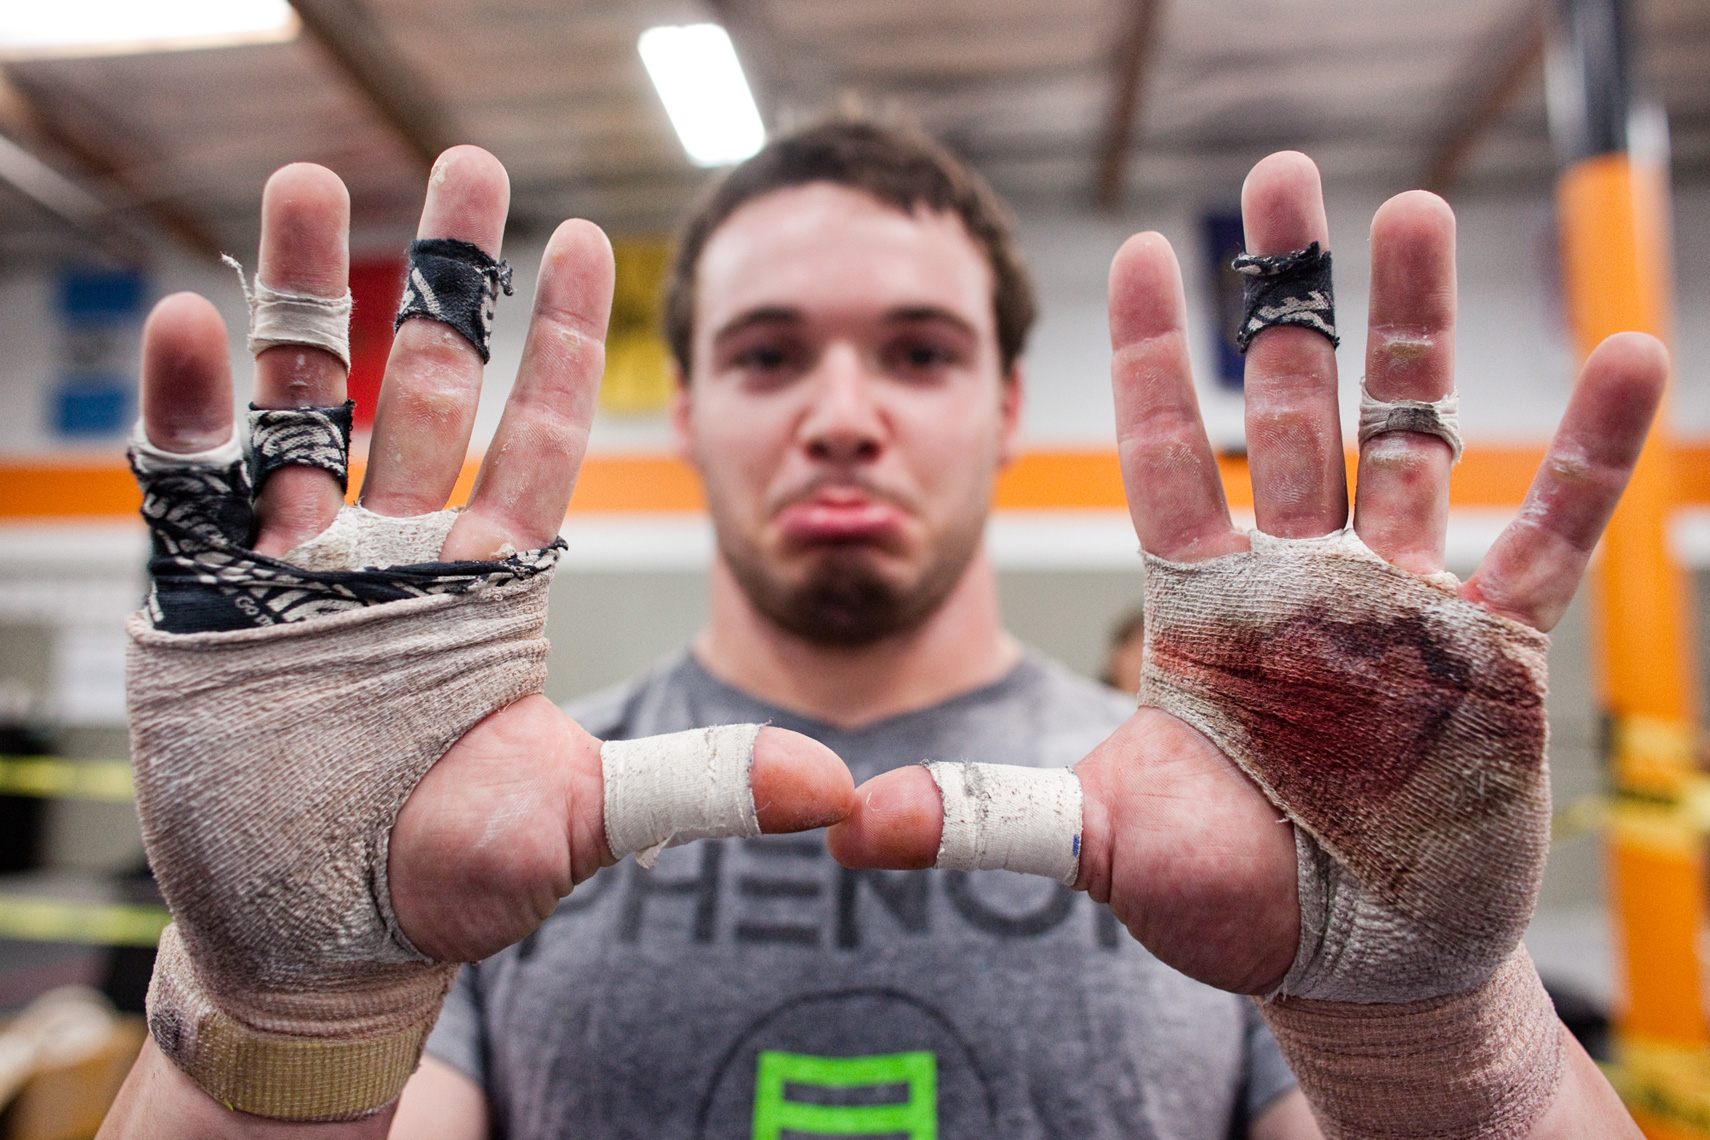 Ryan Fischer, Crossfit athlete,Los Angeles Sports Photography, Michael Brian, bloody hands, Crossfit Chalk